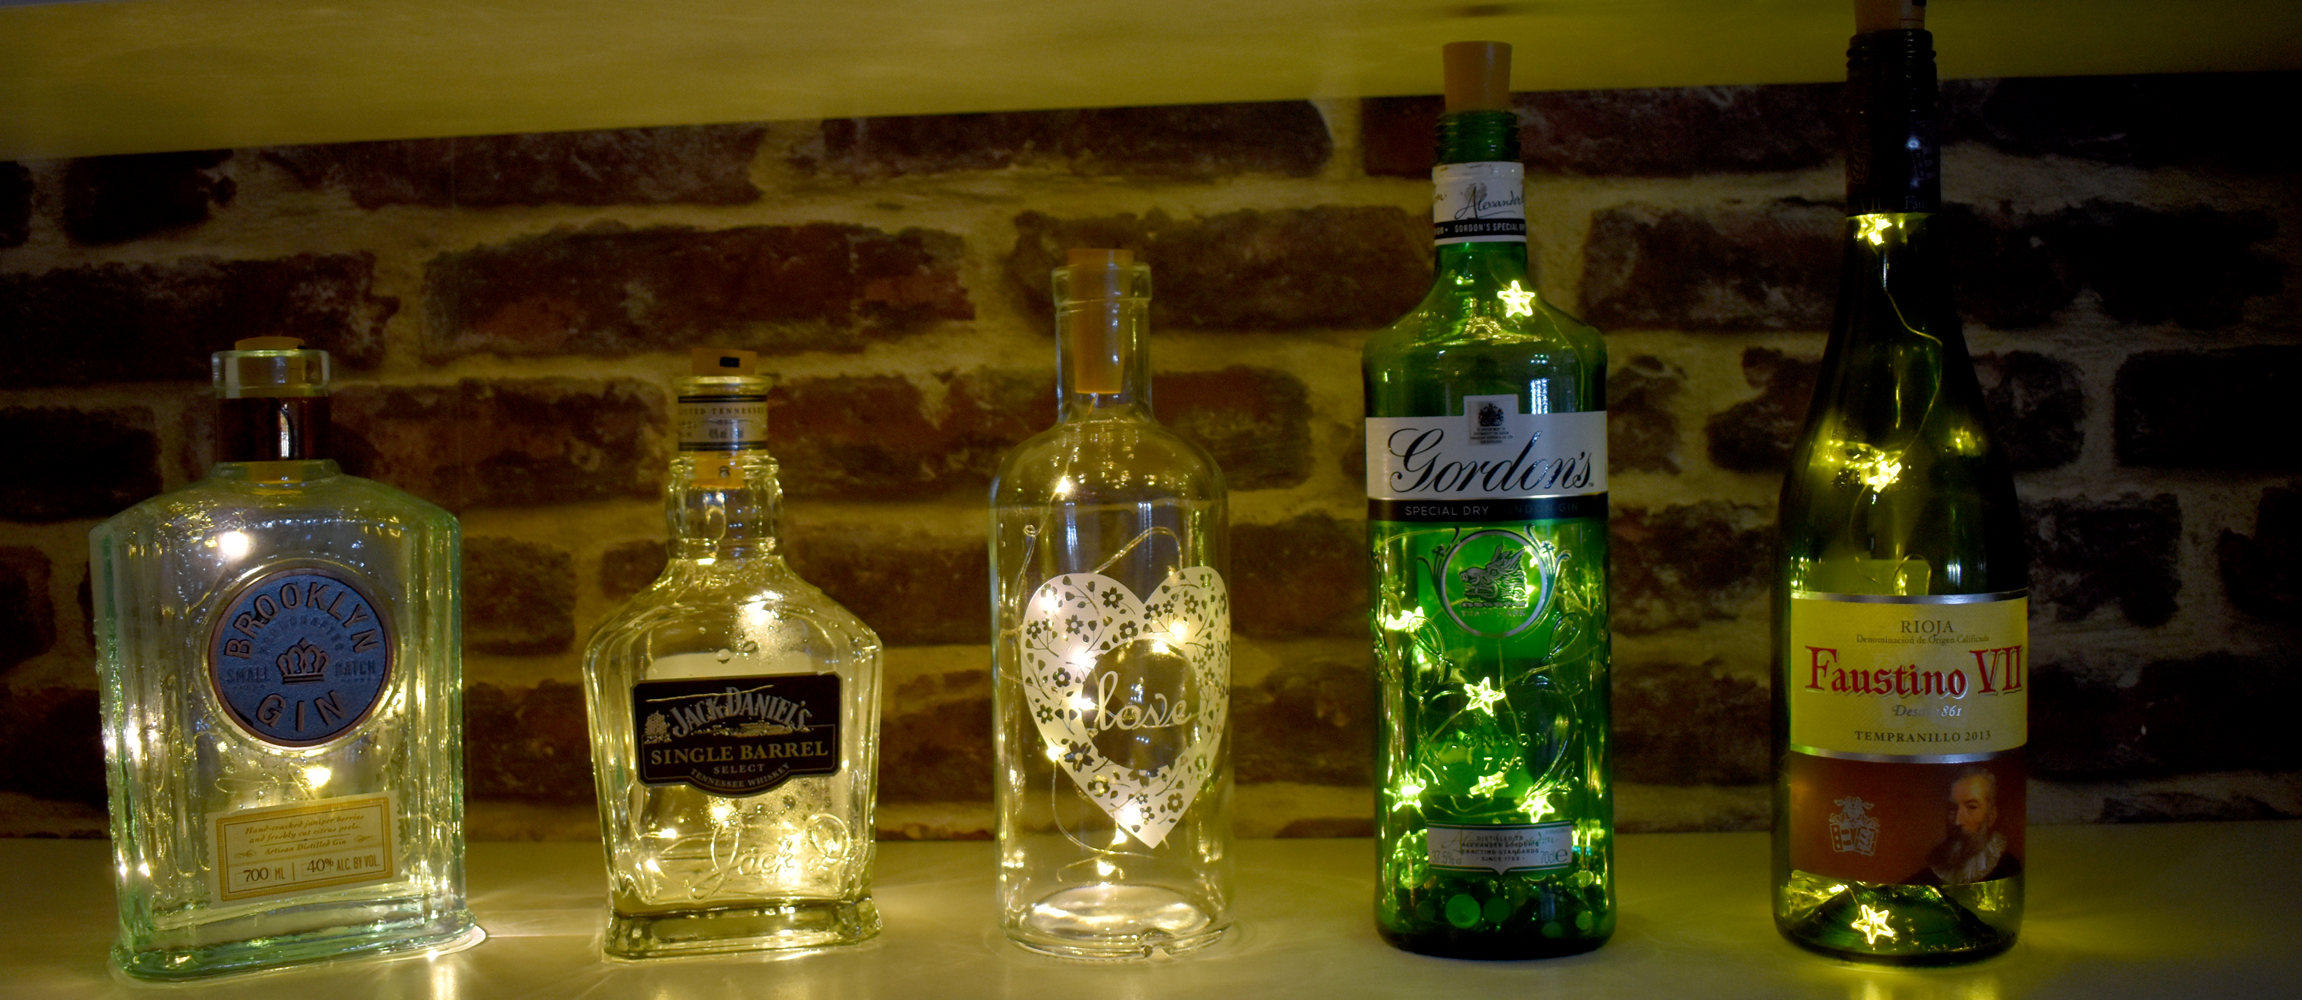 Transform and recycle your bottles into beautiful lighting features with our low-cost LED lights.